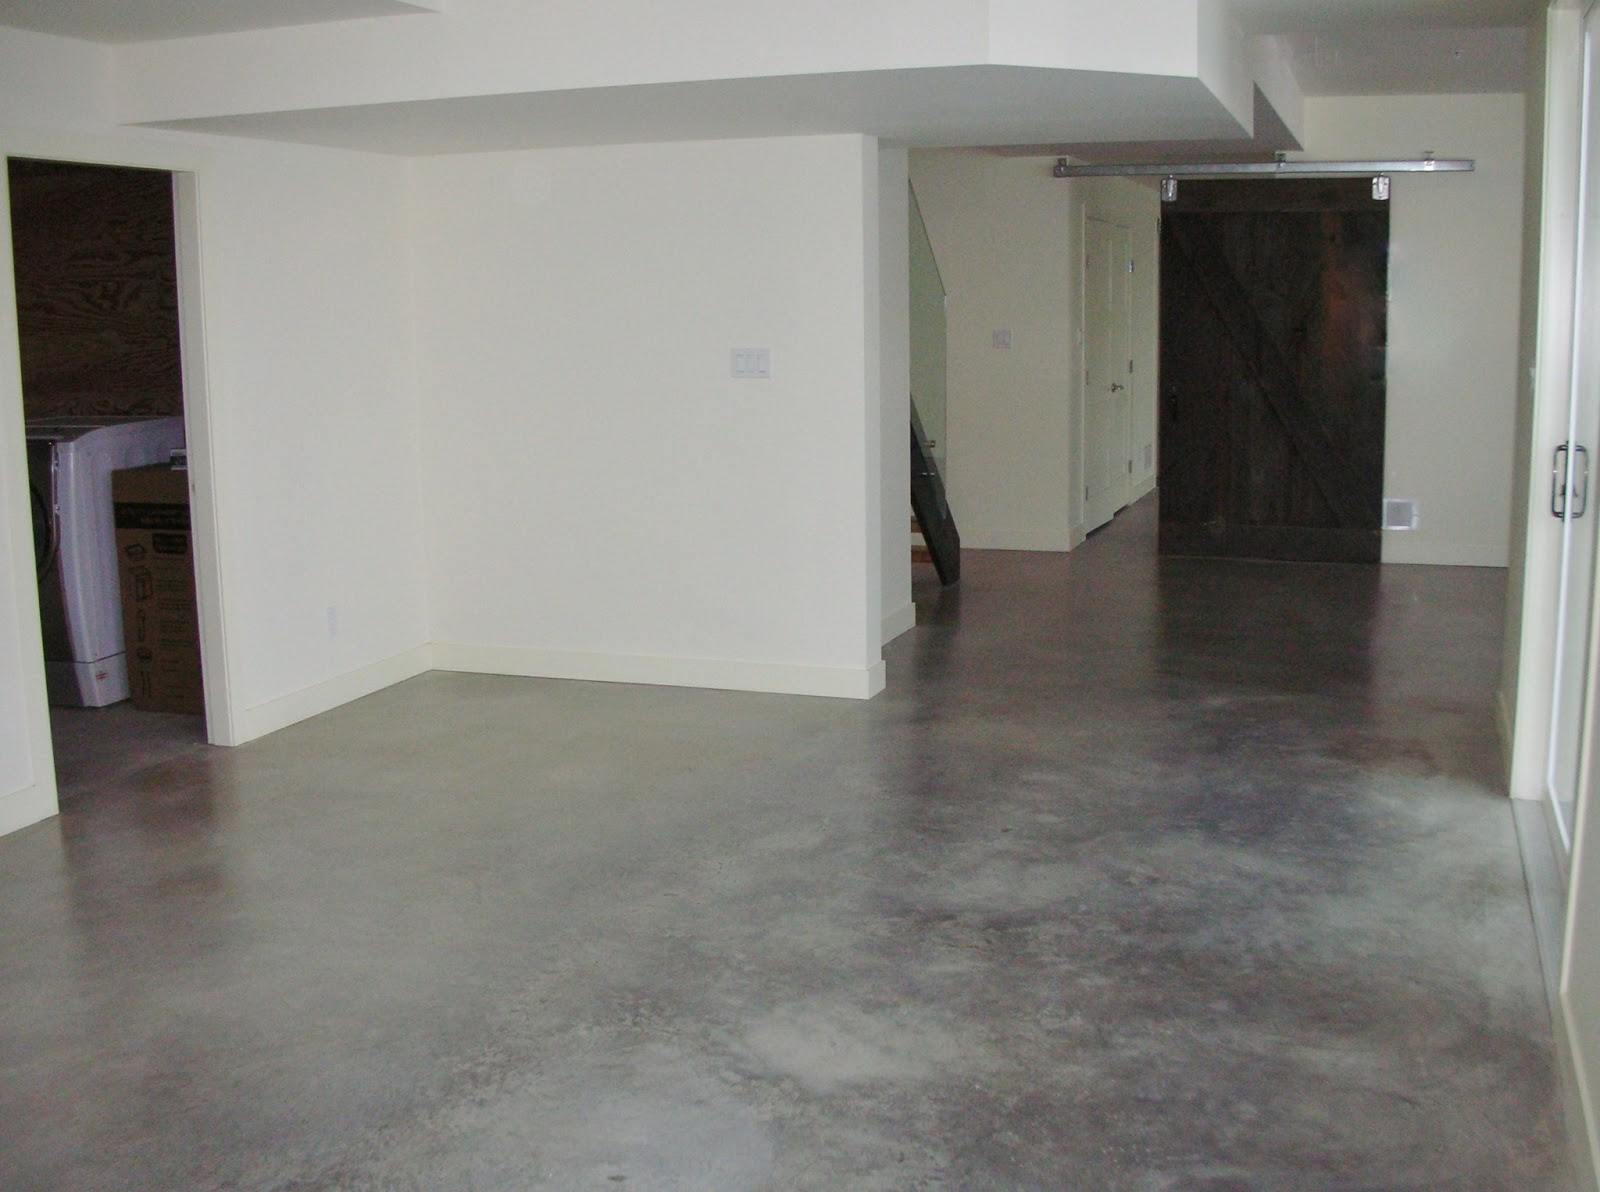 Basement remodeling ideas basement floor - Cement basement floor ideas ...